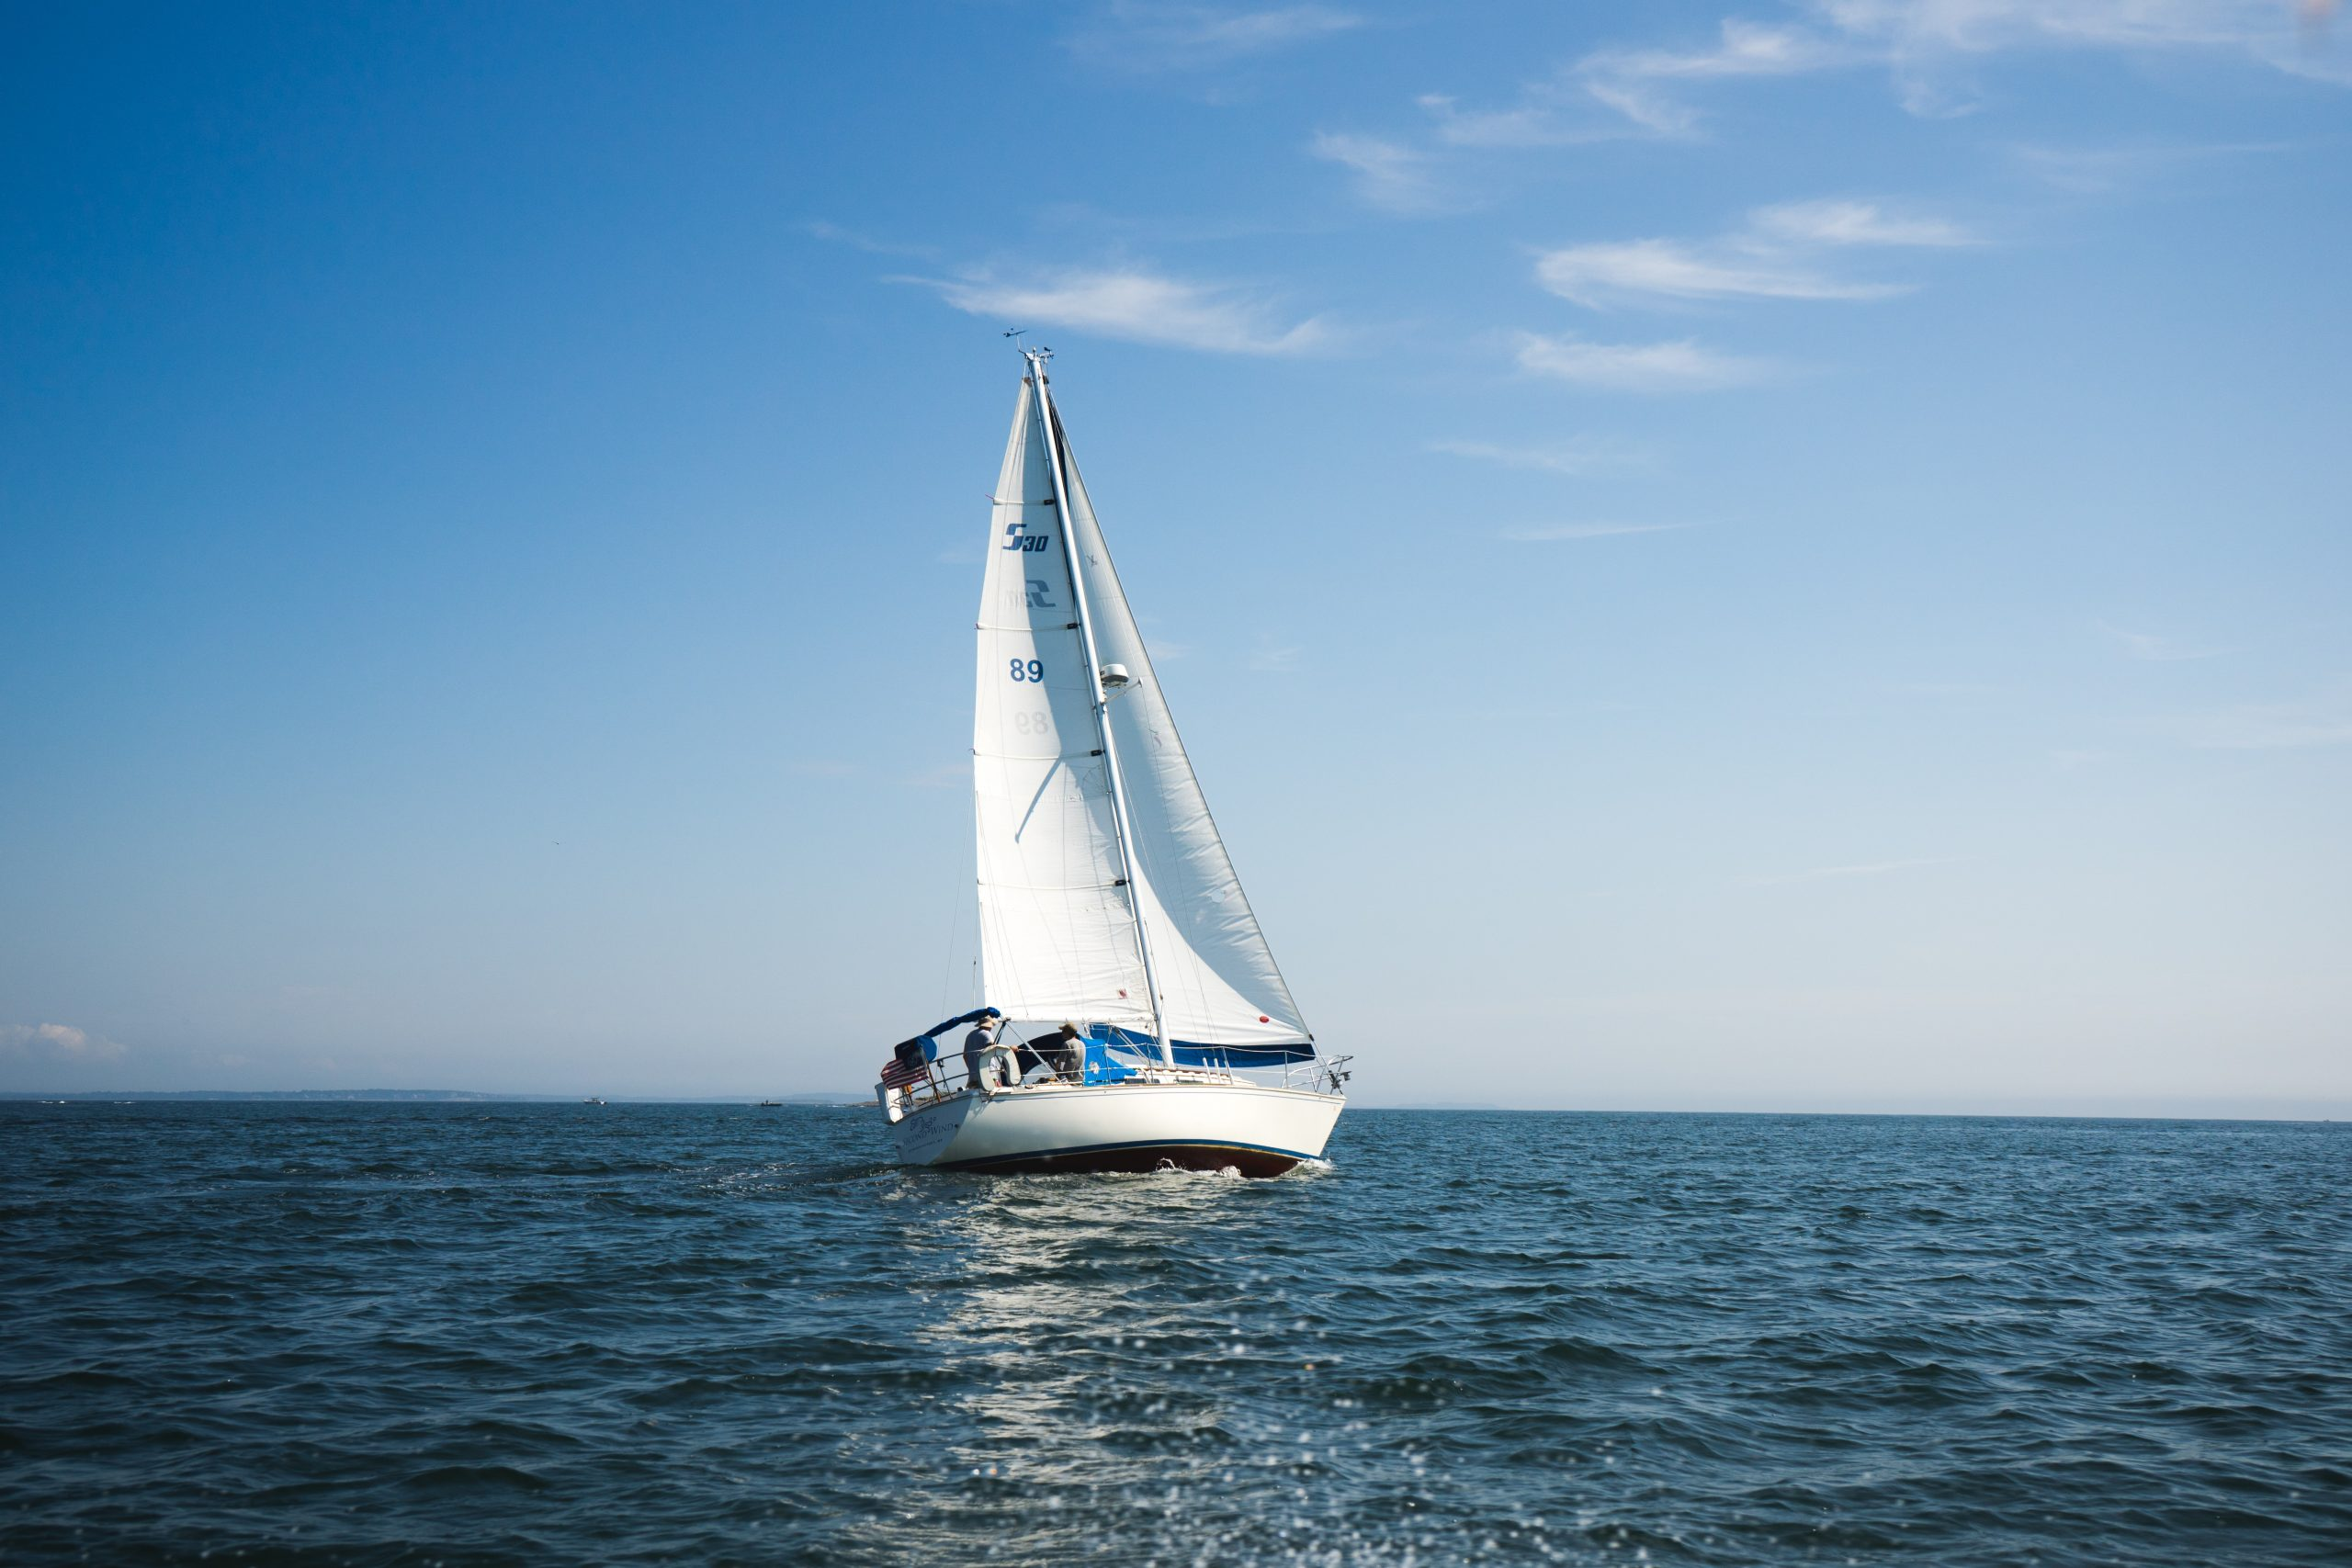 Sailboat in the middle of water